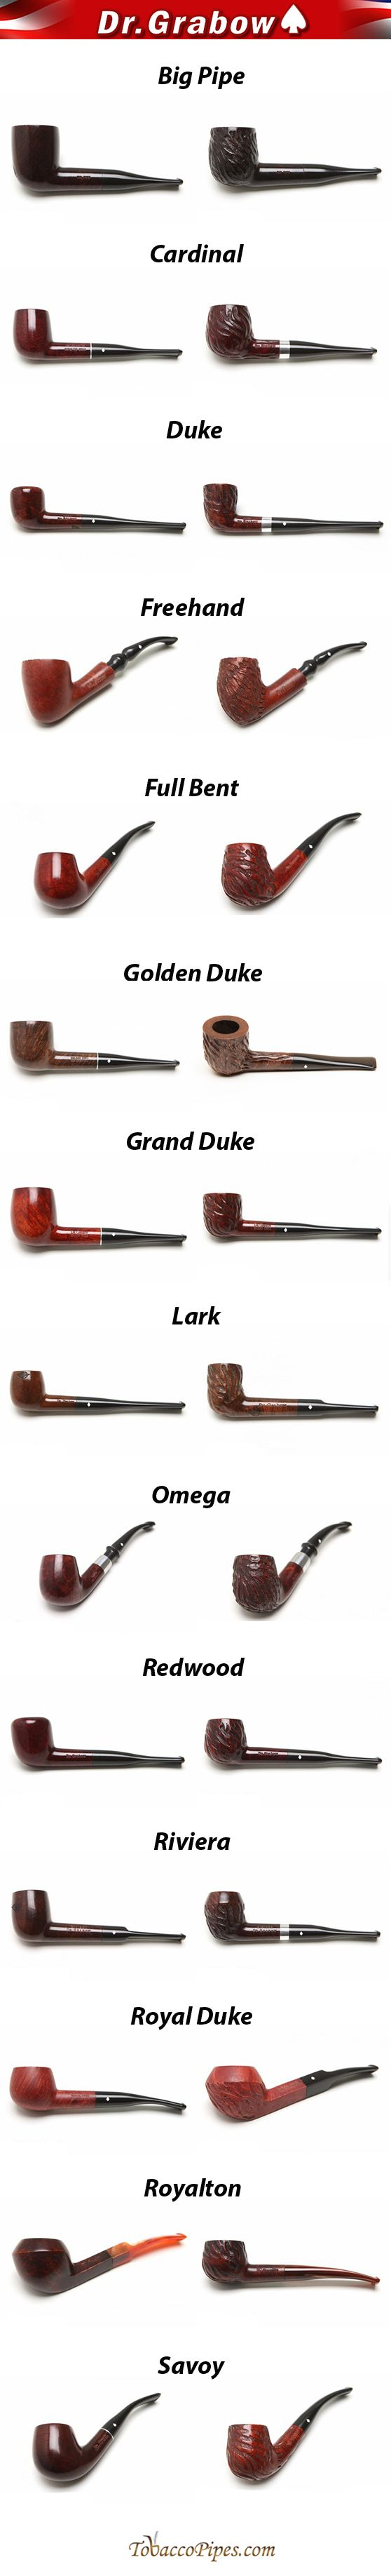 Dr. Grabow Models and Finishes - #1 US Manufactured Selling Pipes